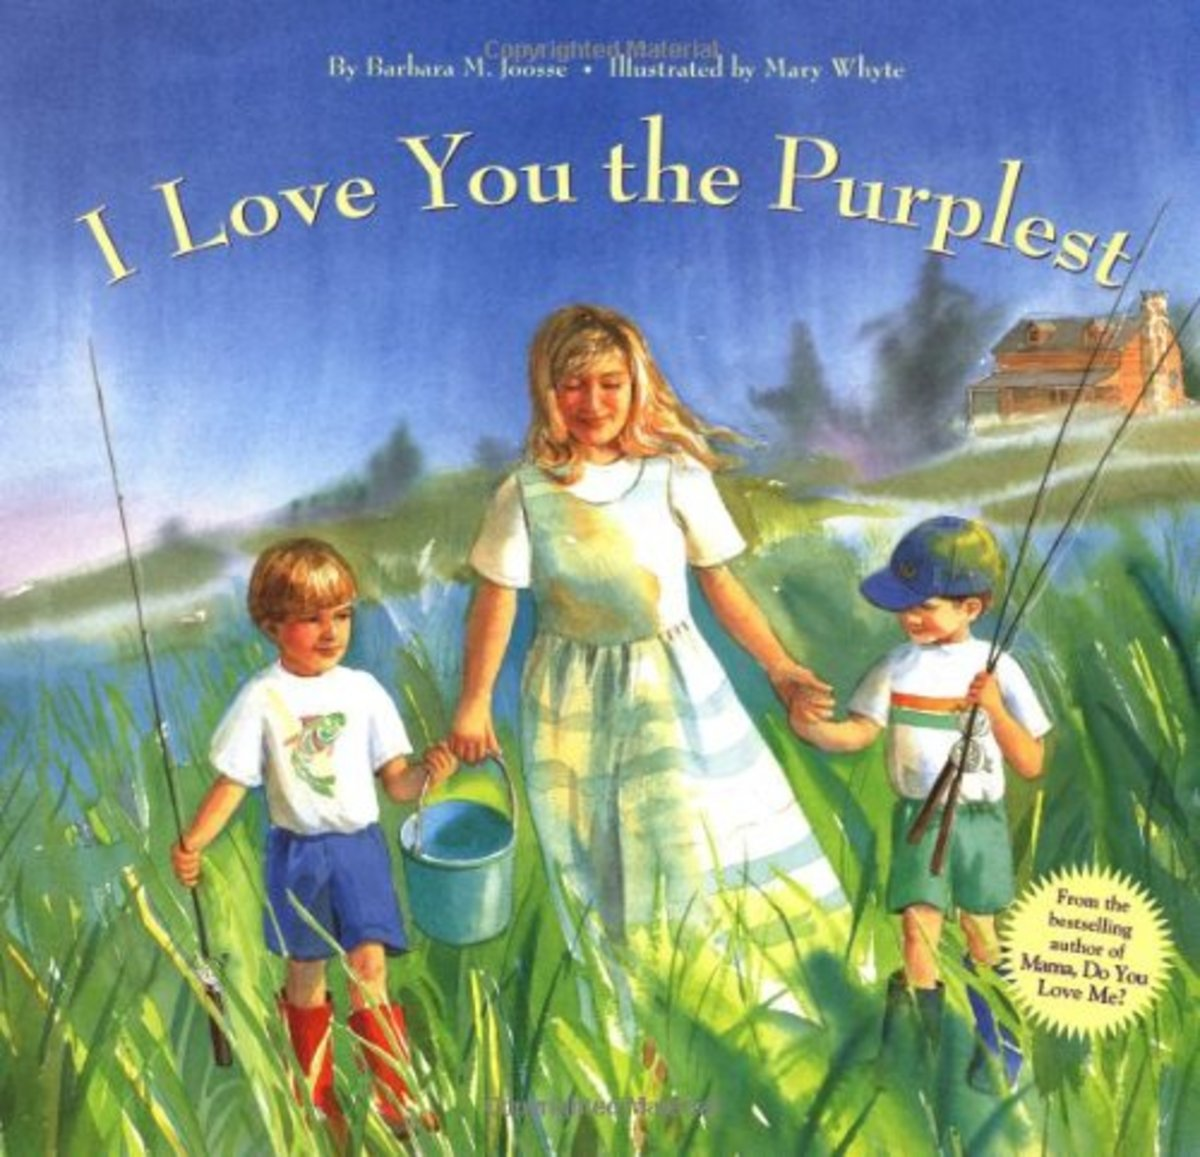 Books for Mothers I Love You the Purplest